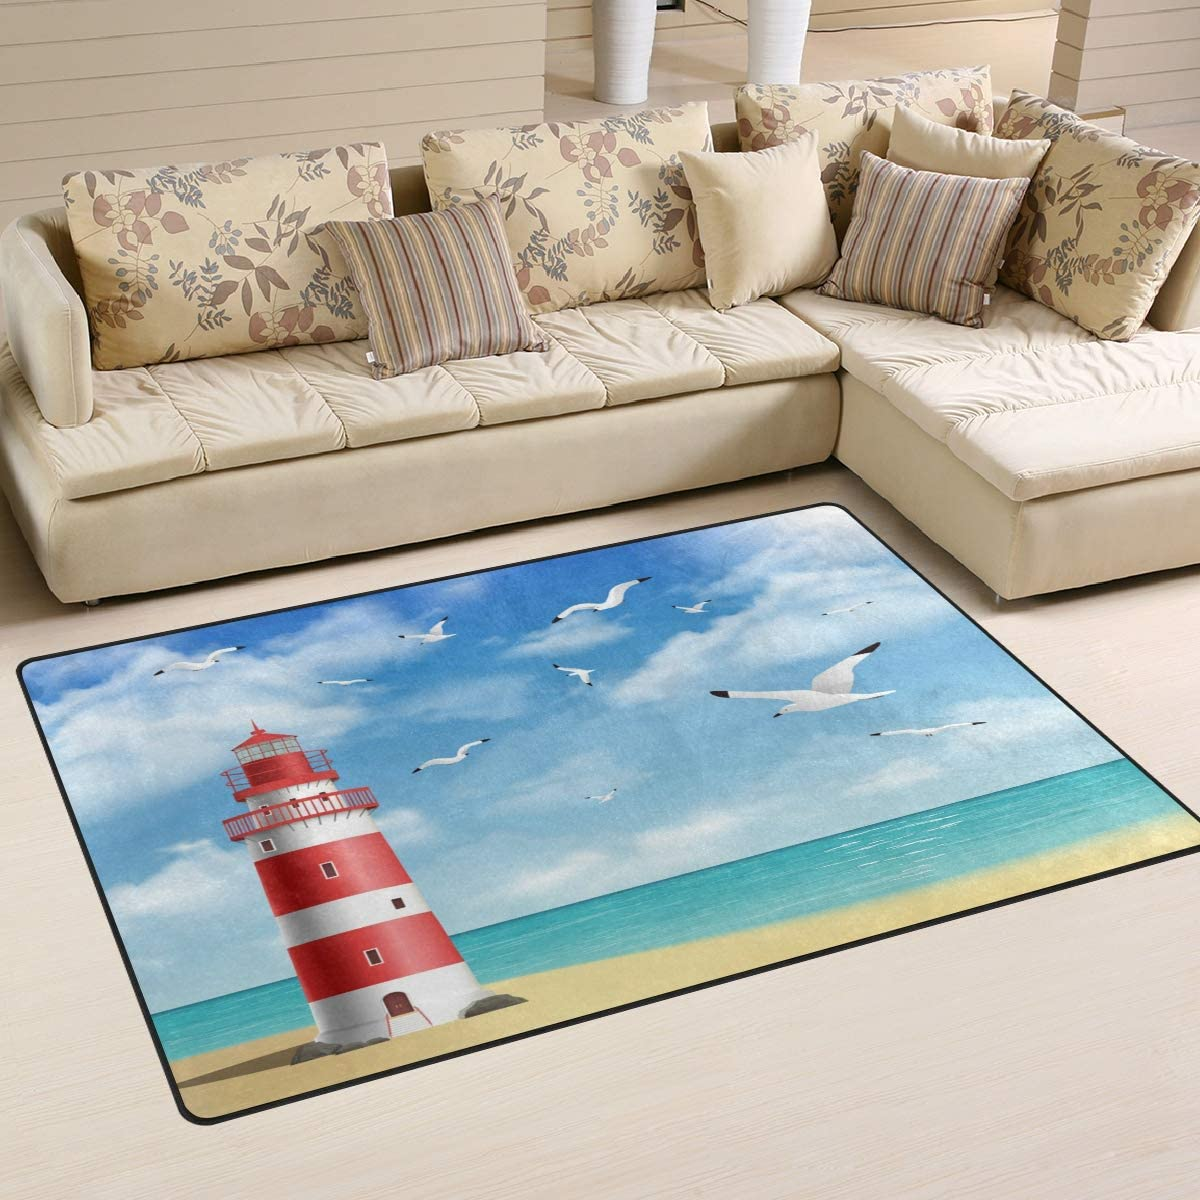 Linomo Area Rug Summer Sea Lighthouse Seagull Floor Rugs Doormat Living Room Home Decor Carpets Area Mats For Kids Boys Girls Bedroom 60 X 39 Inches Amazon Ca Home Kitchen